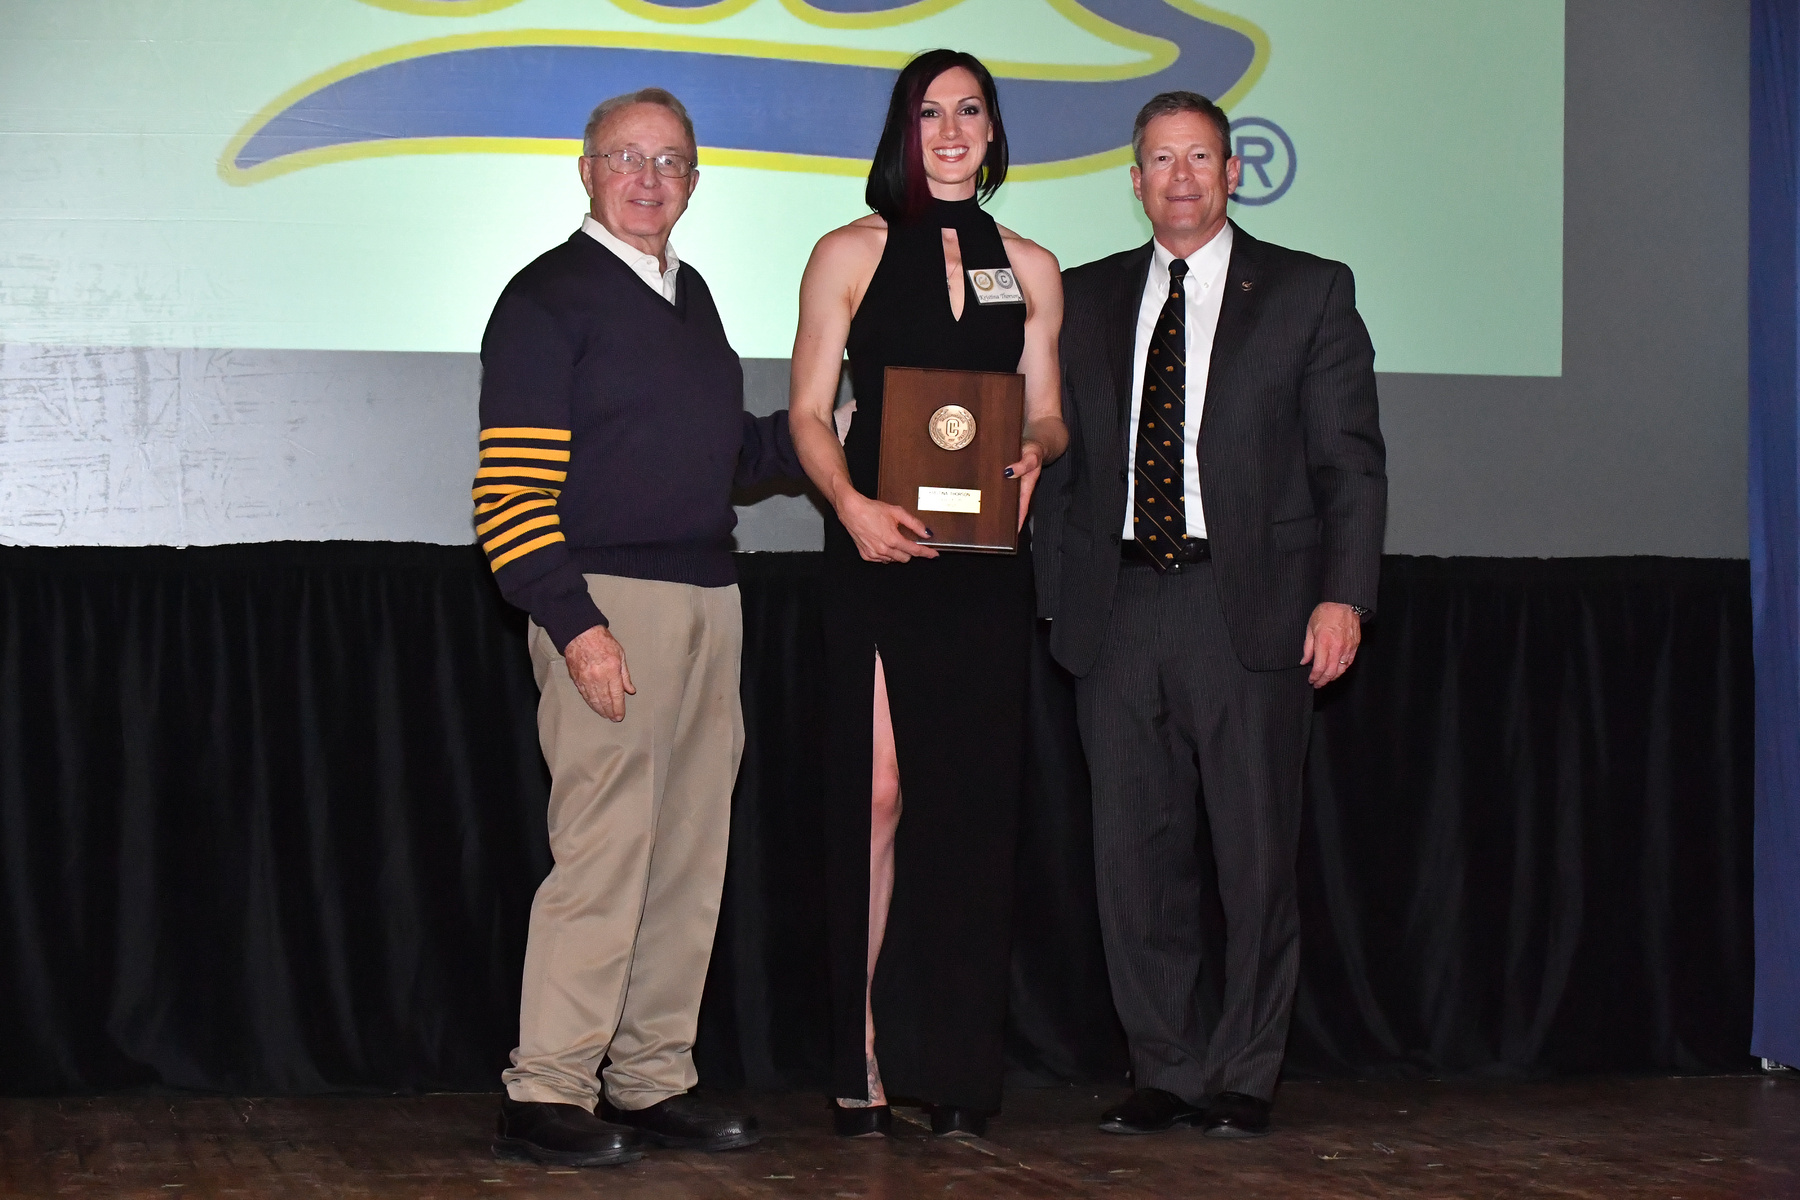 2018 Cal Hall of Fame ceremony _20181026_211216_MarcusE-(ZF-0861-35620-1-186).jpg